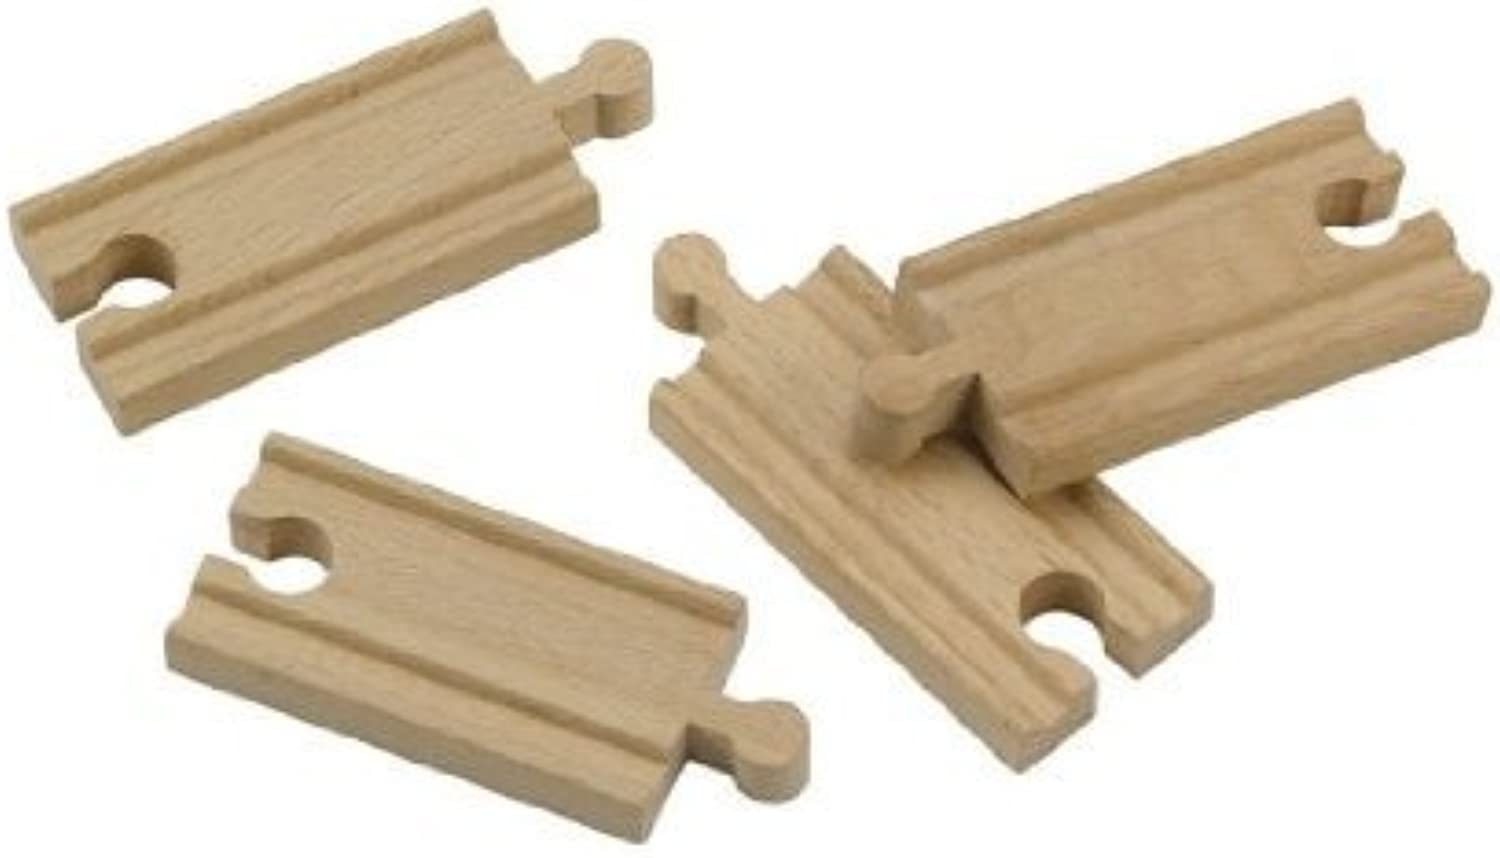 Wooden 9.6cm Straight Train Tracks; wooden railway compatible by Tidlo